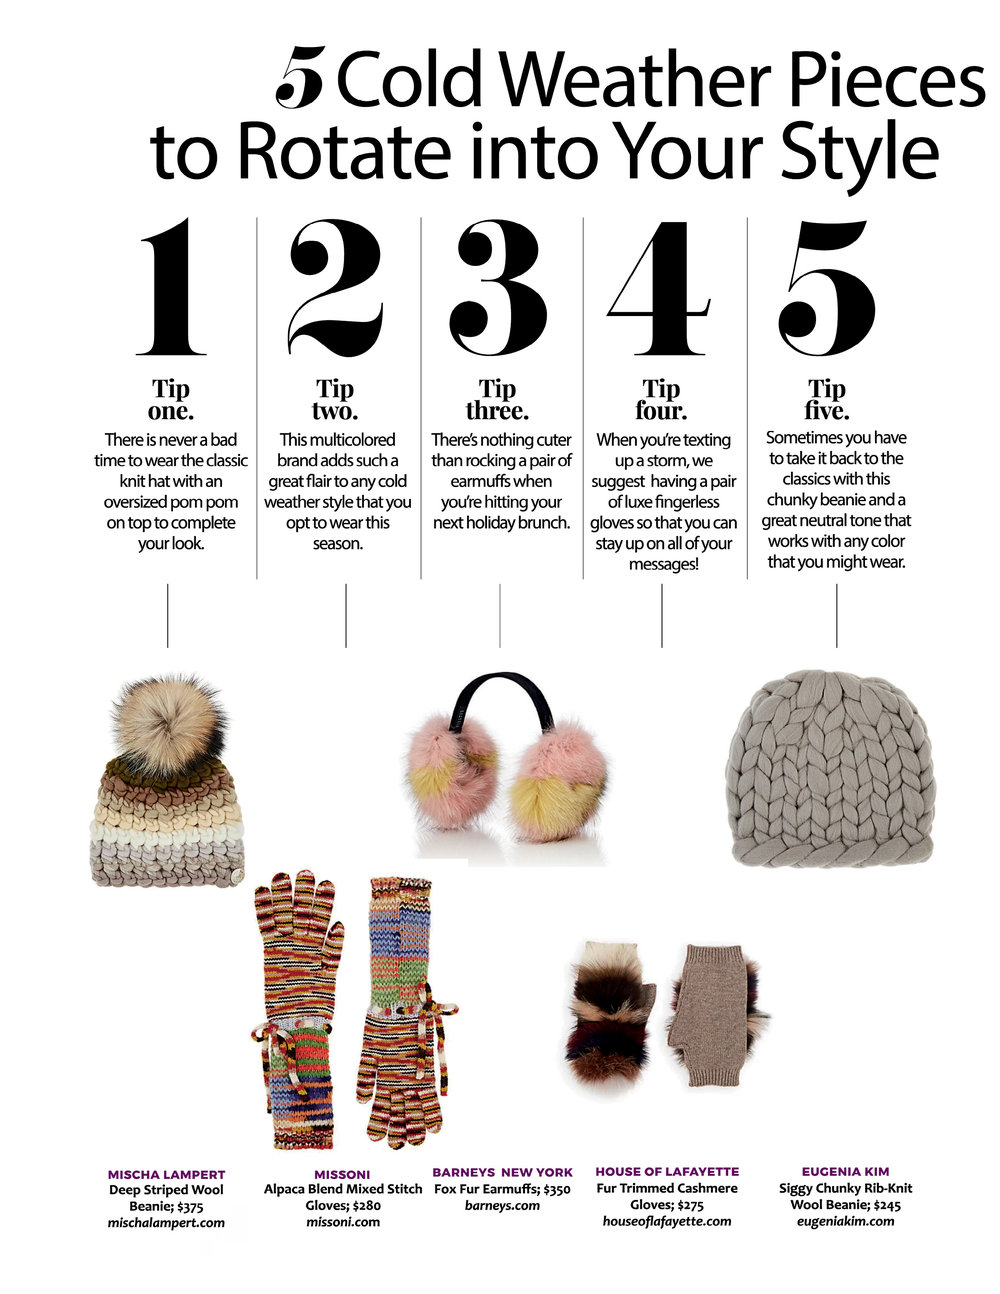 AM NOV 5 COLD WEATHER PIECES TO ROTATE INTO YOUR STYLE.jpg